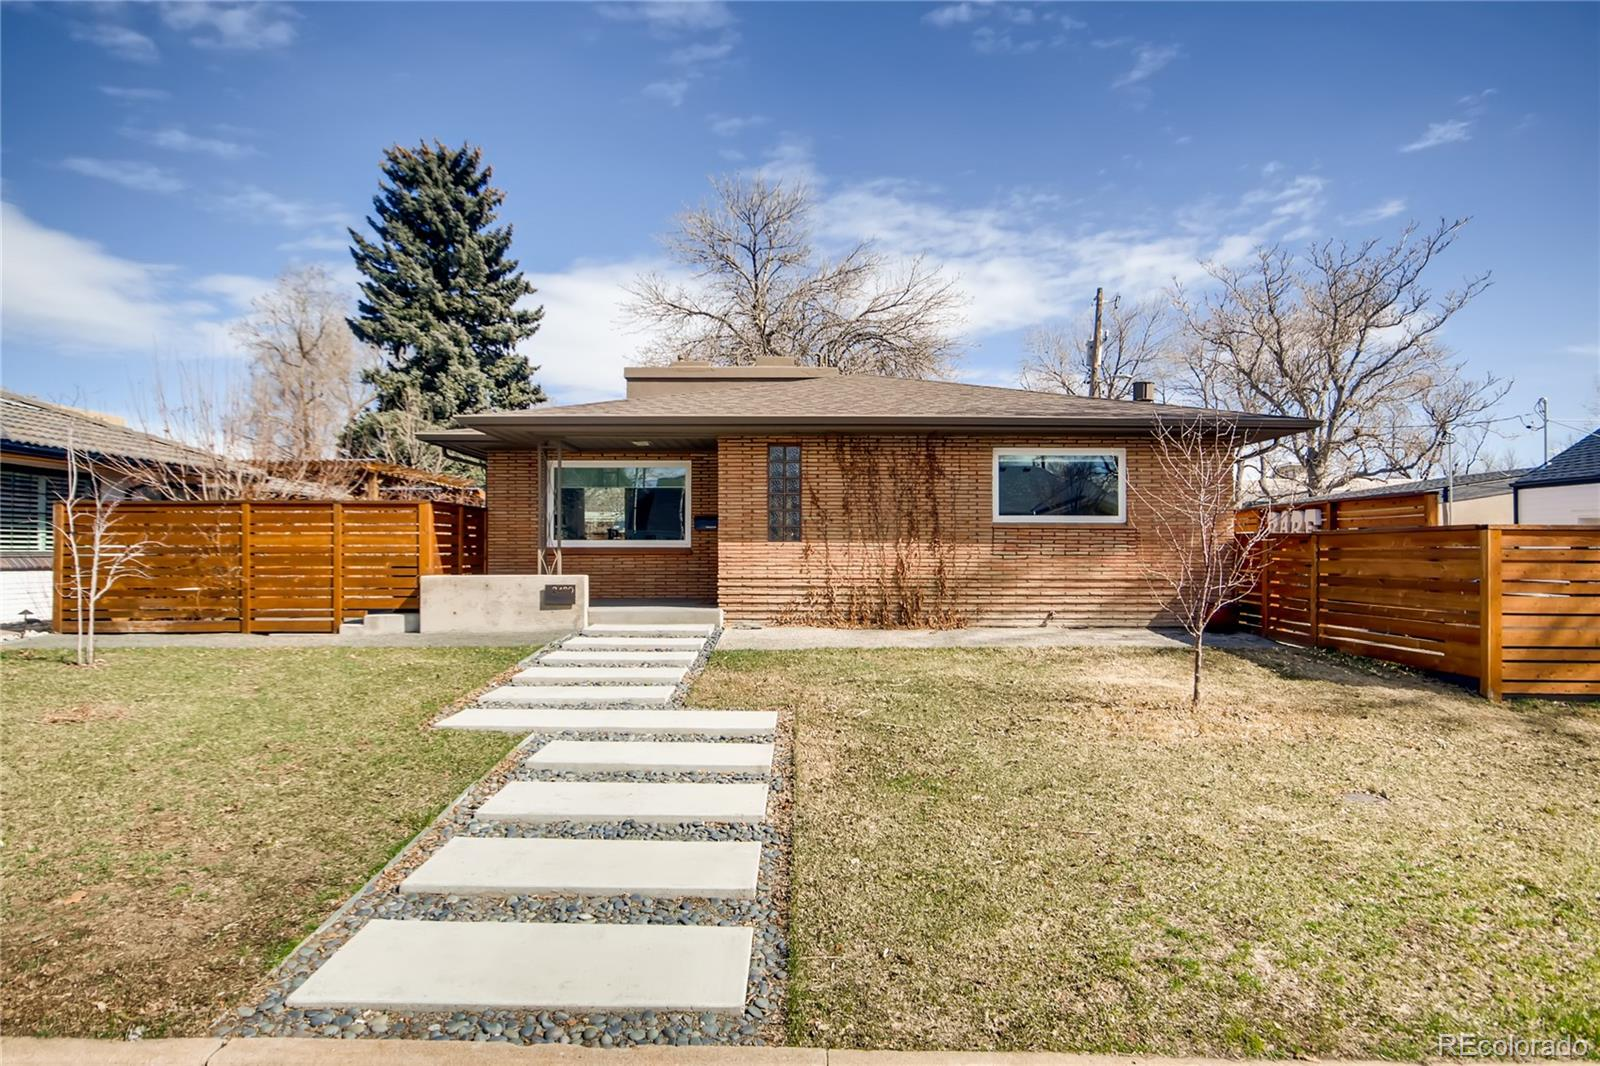 MLS# 6749846 - 1 - 2480 Perry Street, Denver, CO 80212